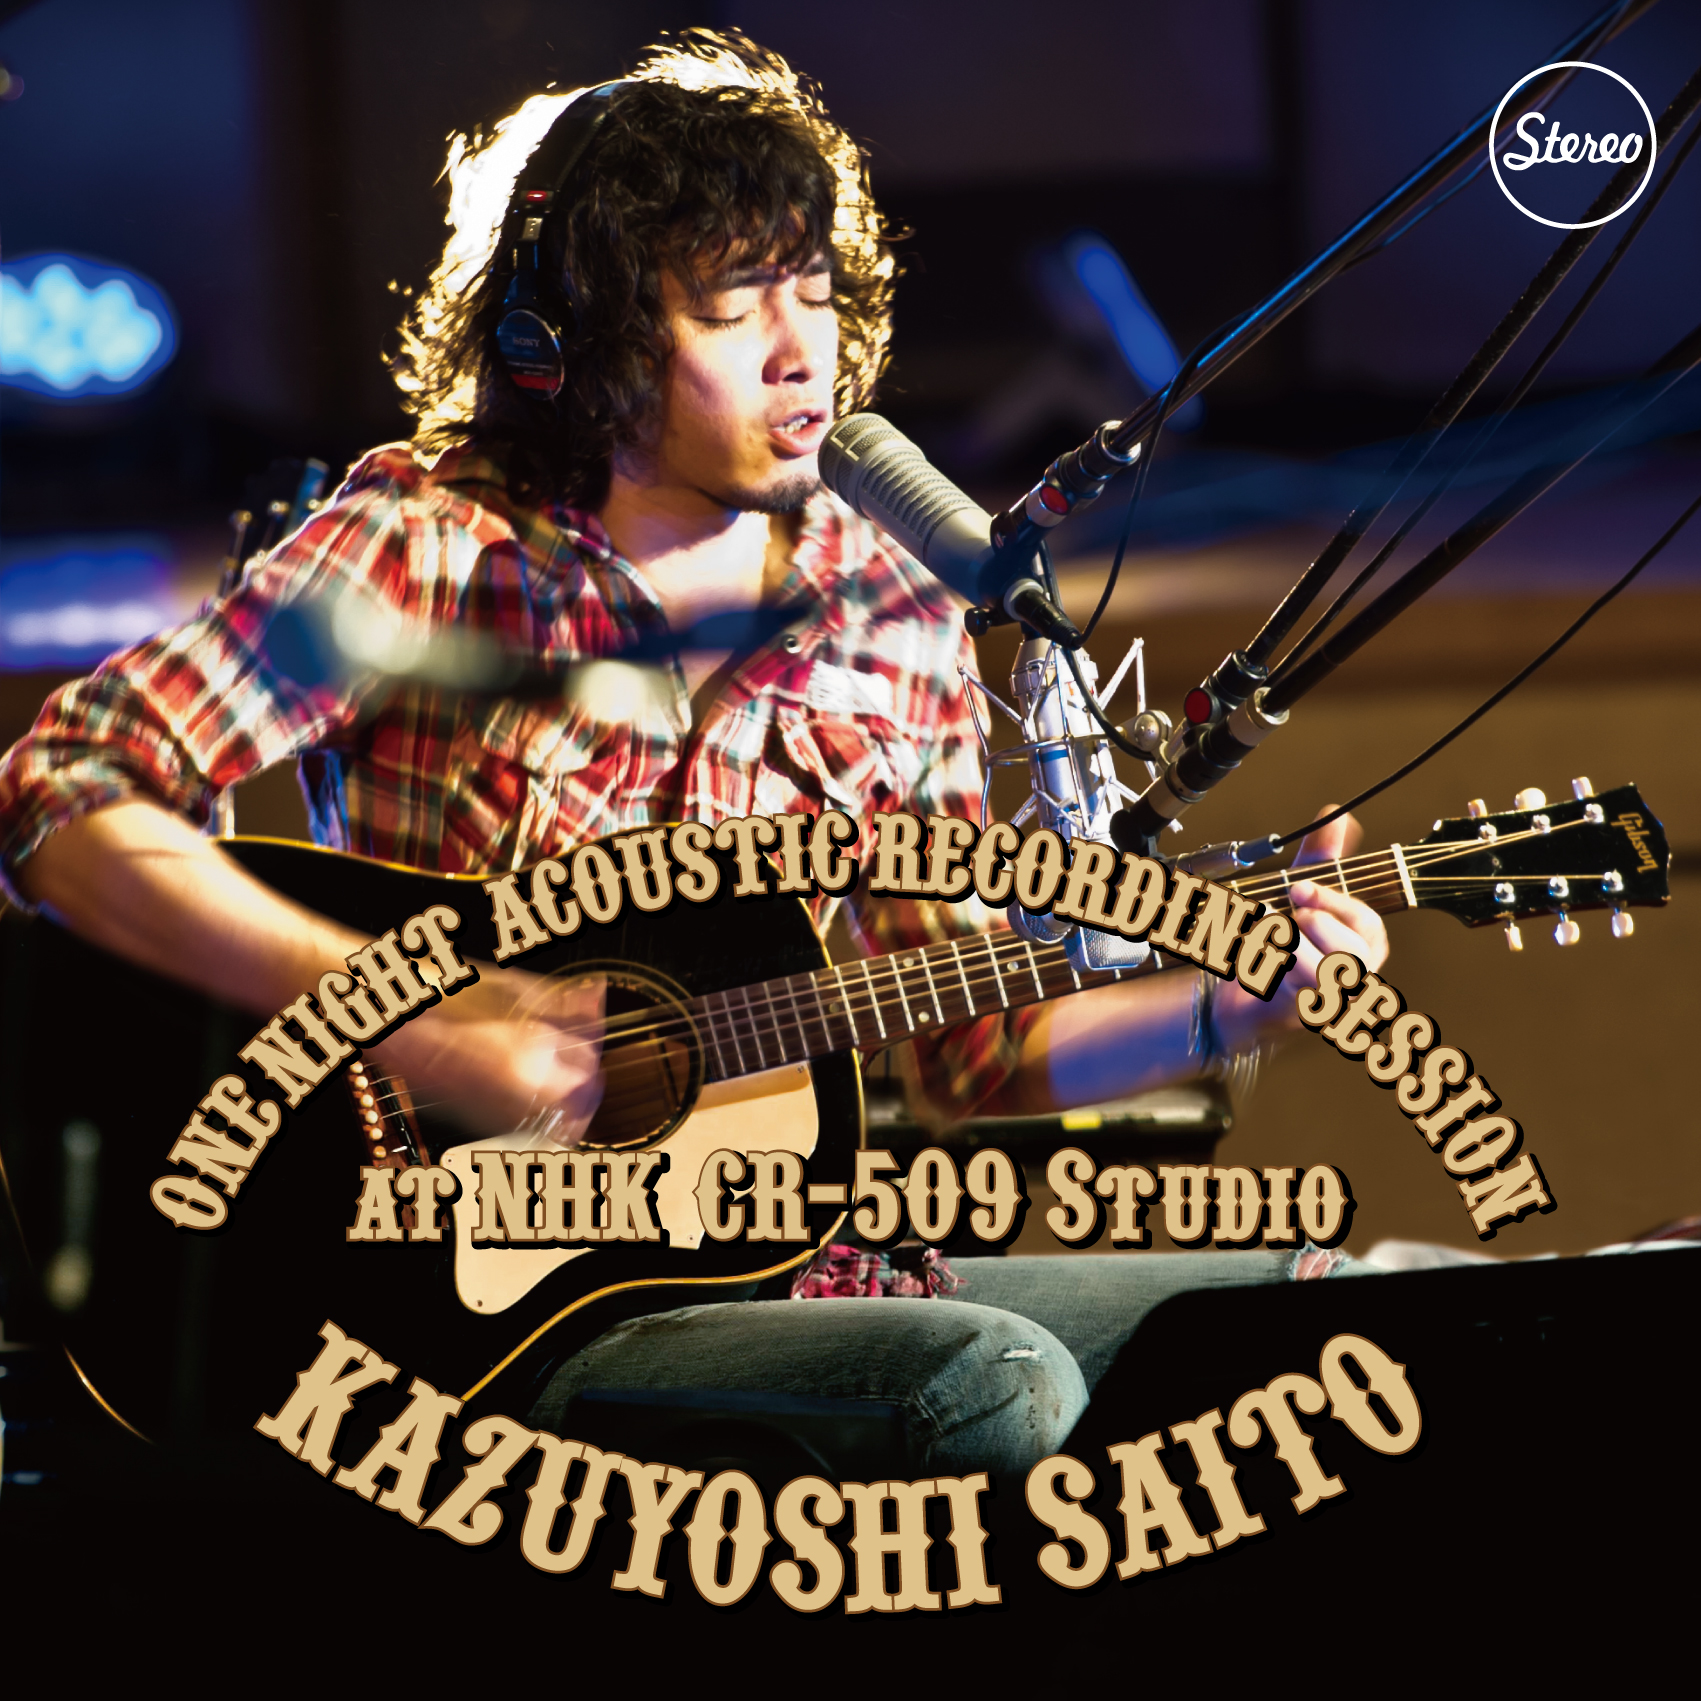 『ONE NIGHT ACOUSTIC RECORDING SESSION at NHK CR-509 Studio』jacket